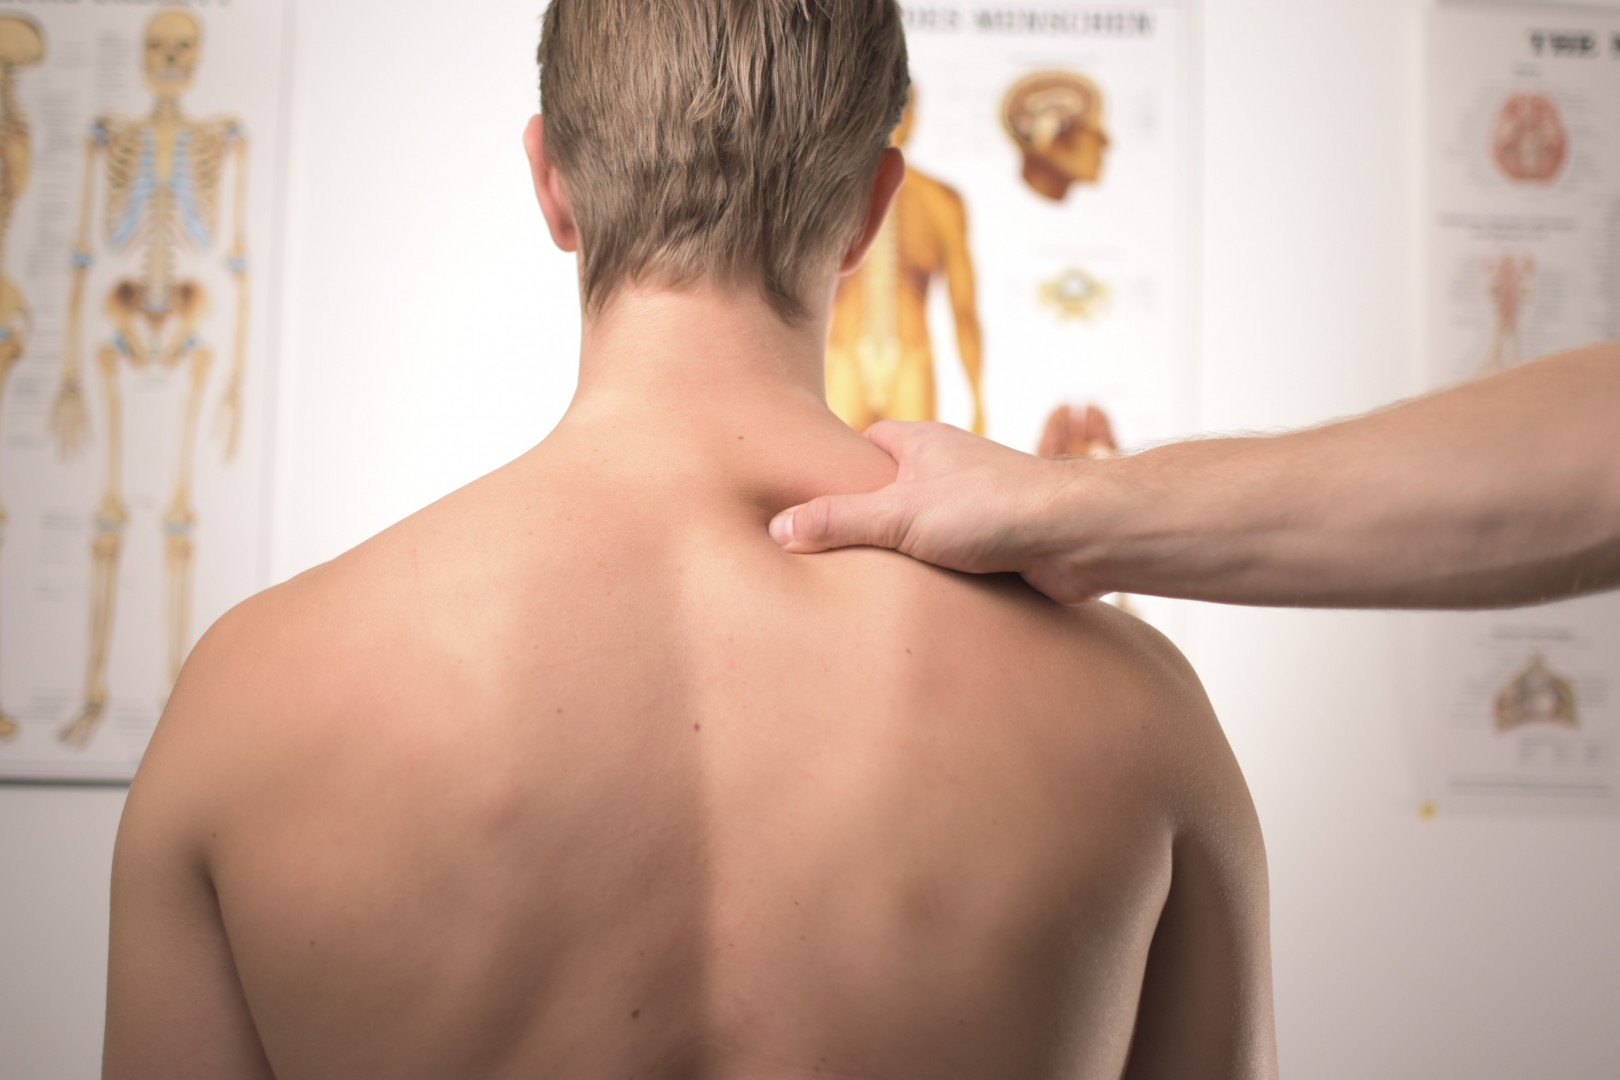 7 Conditions that Can Be Addressed by Chiropractic Care, Dixon Chiropractic in Oakland Park, Florida